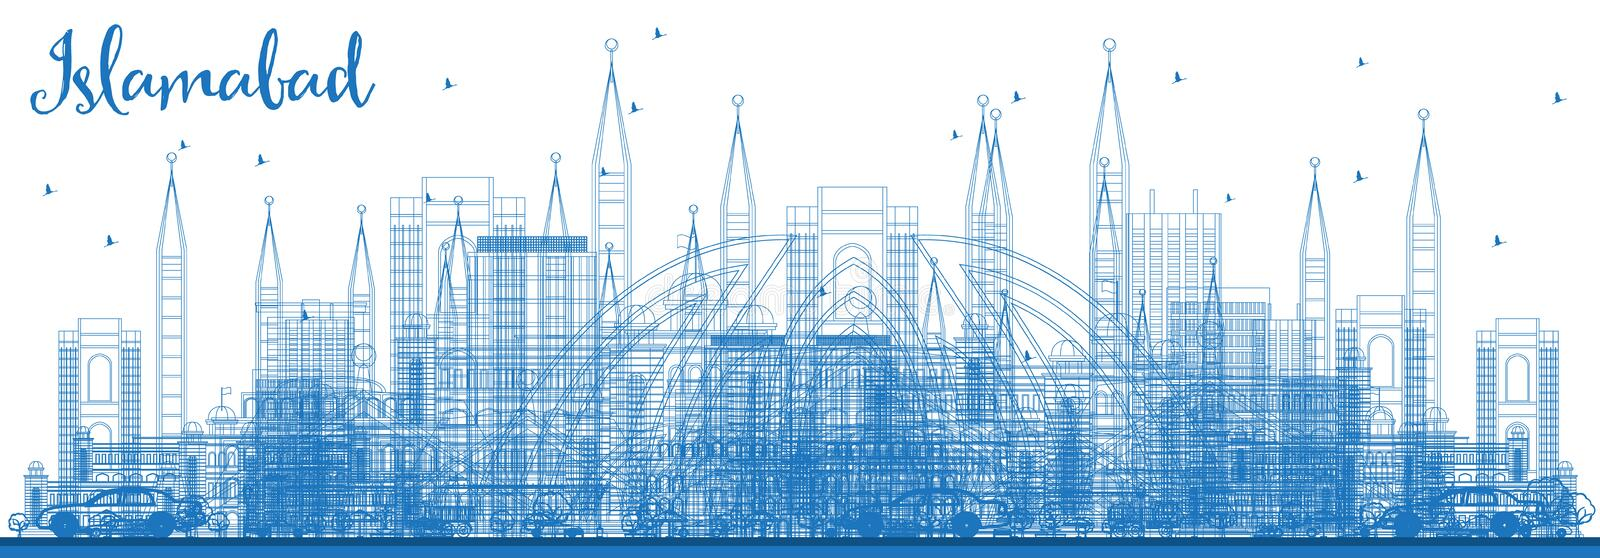 Outline Islamabad Pakistan City Skyline with Blue Buildings. Vector Illustration. Business Travel and Tourism Concept with Historic Architecture. Islamabad vector illustration